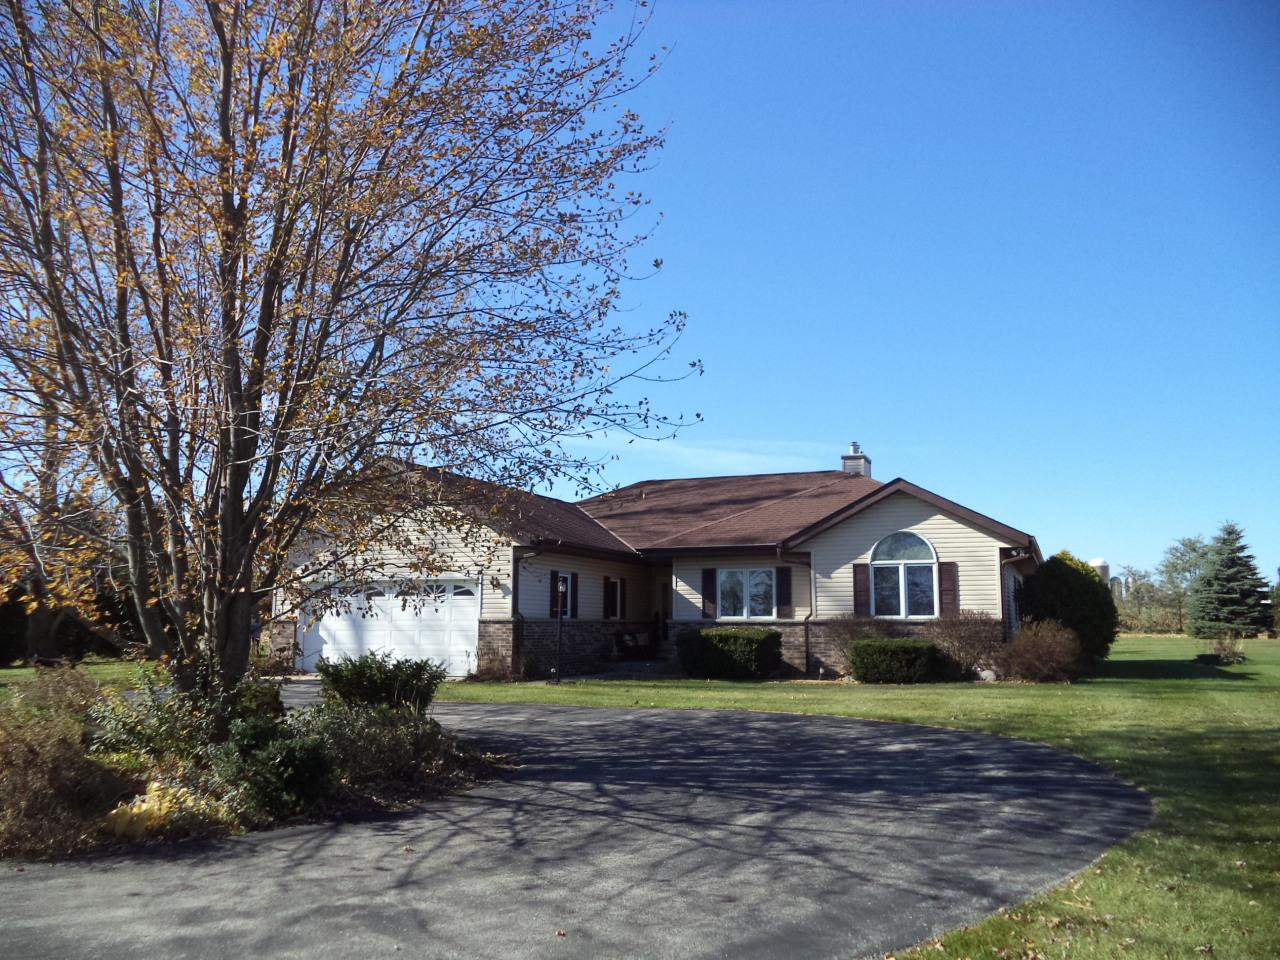 Pride of ownership in this 3 BR 2.5 BA ranch on 9 acres in Slinger School District. Kitchen features newer granite countertops, (2015 per seller) beautiful wood laminate floor & appliances included. Enjoy breakfast in the light filled dinette off the kitchen that also leads to southerly facing deck. Living room has a gas fireplace & vaulted ceiling. Master suite featuring its own gas fireplace, jetted tub in the bath & walk in closet. In the lower level you'll find a large rec room with additional gas fireplace, a den and a half bath. Relax on the concrete patio that was installed in 2016 overlooking the private backyard. Other updates per seller include furnace in 2015 and roof & gutters in 2016. You'll love the extra storage room outside with the garden shed & 2.5 car heated detached GA.